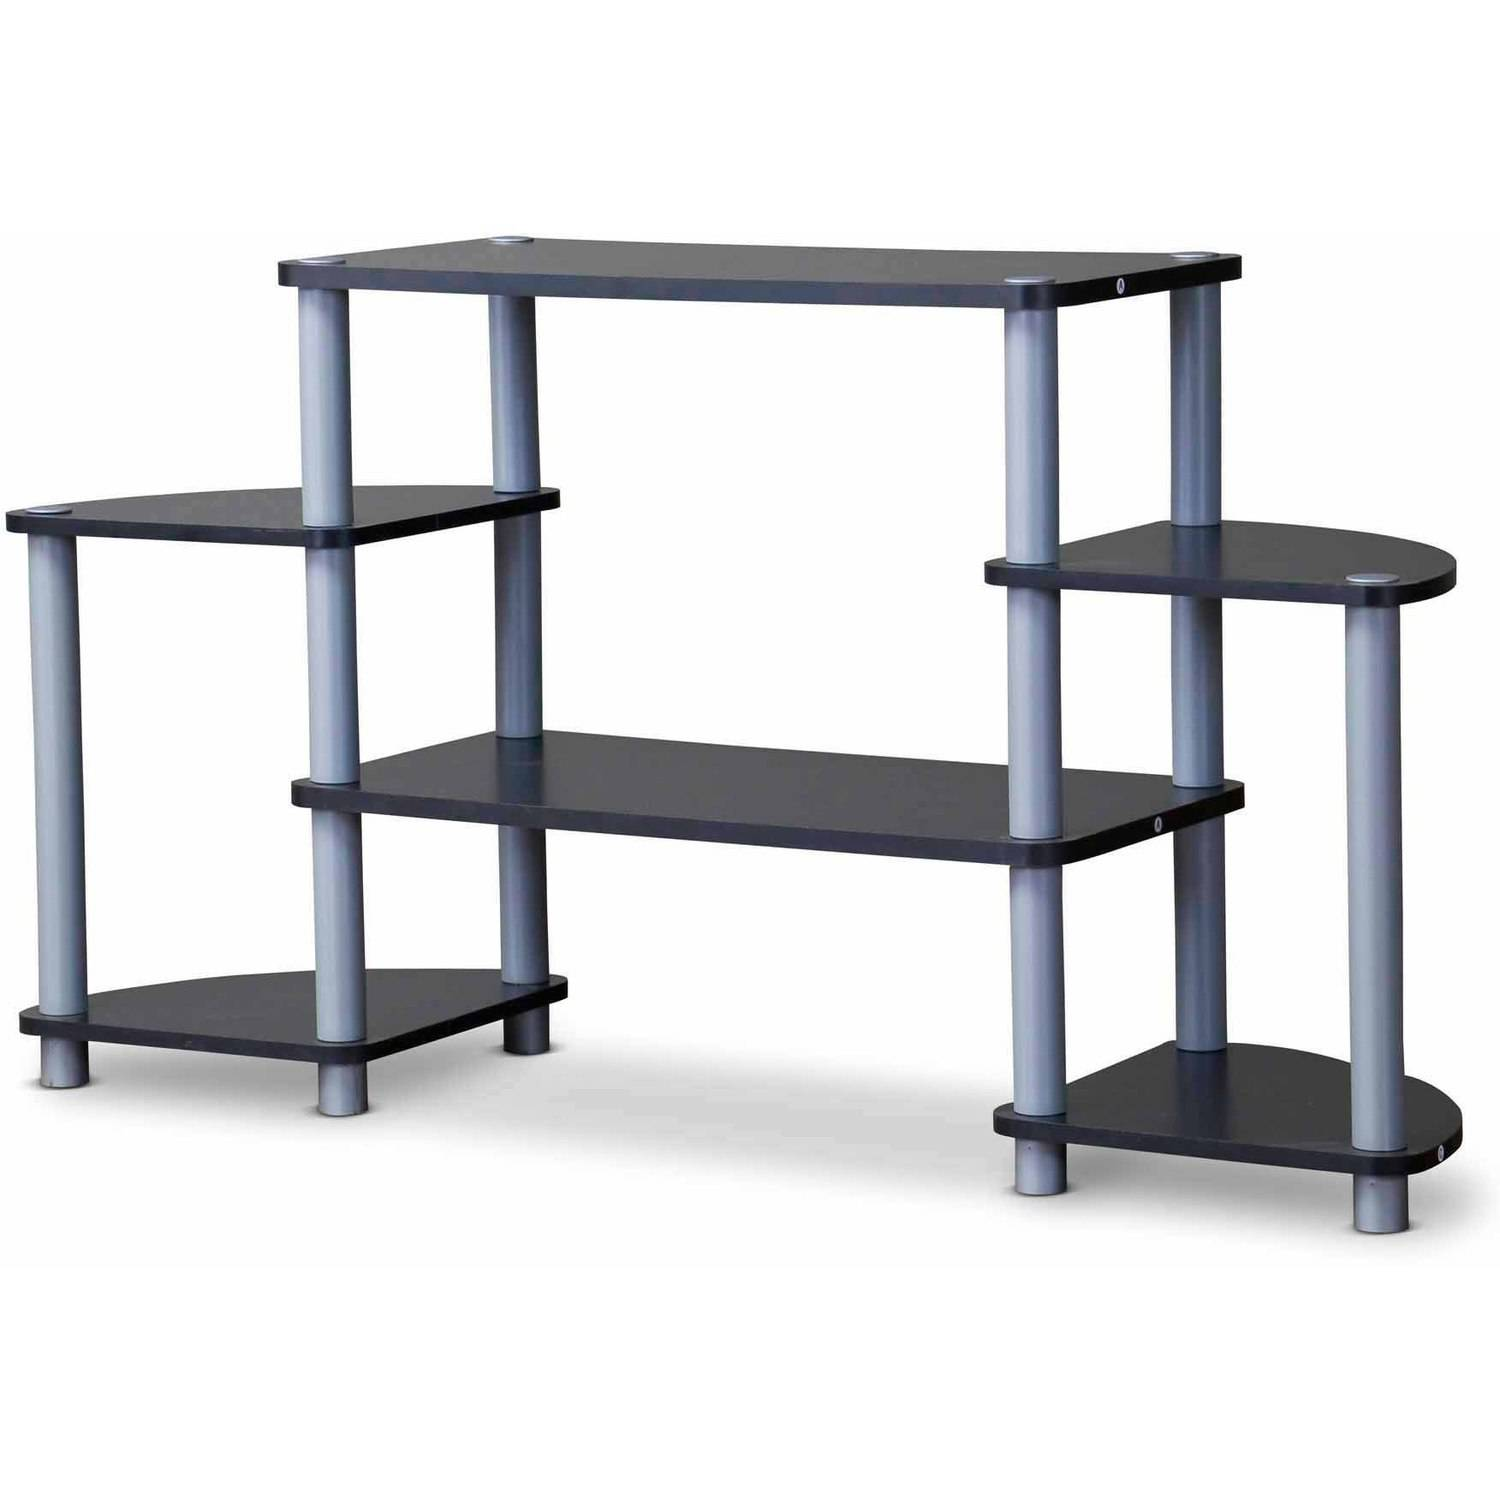 Baxton Studio Orbit Triple Tier TV Stand for TVs up to 42""